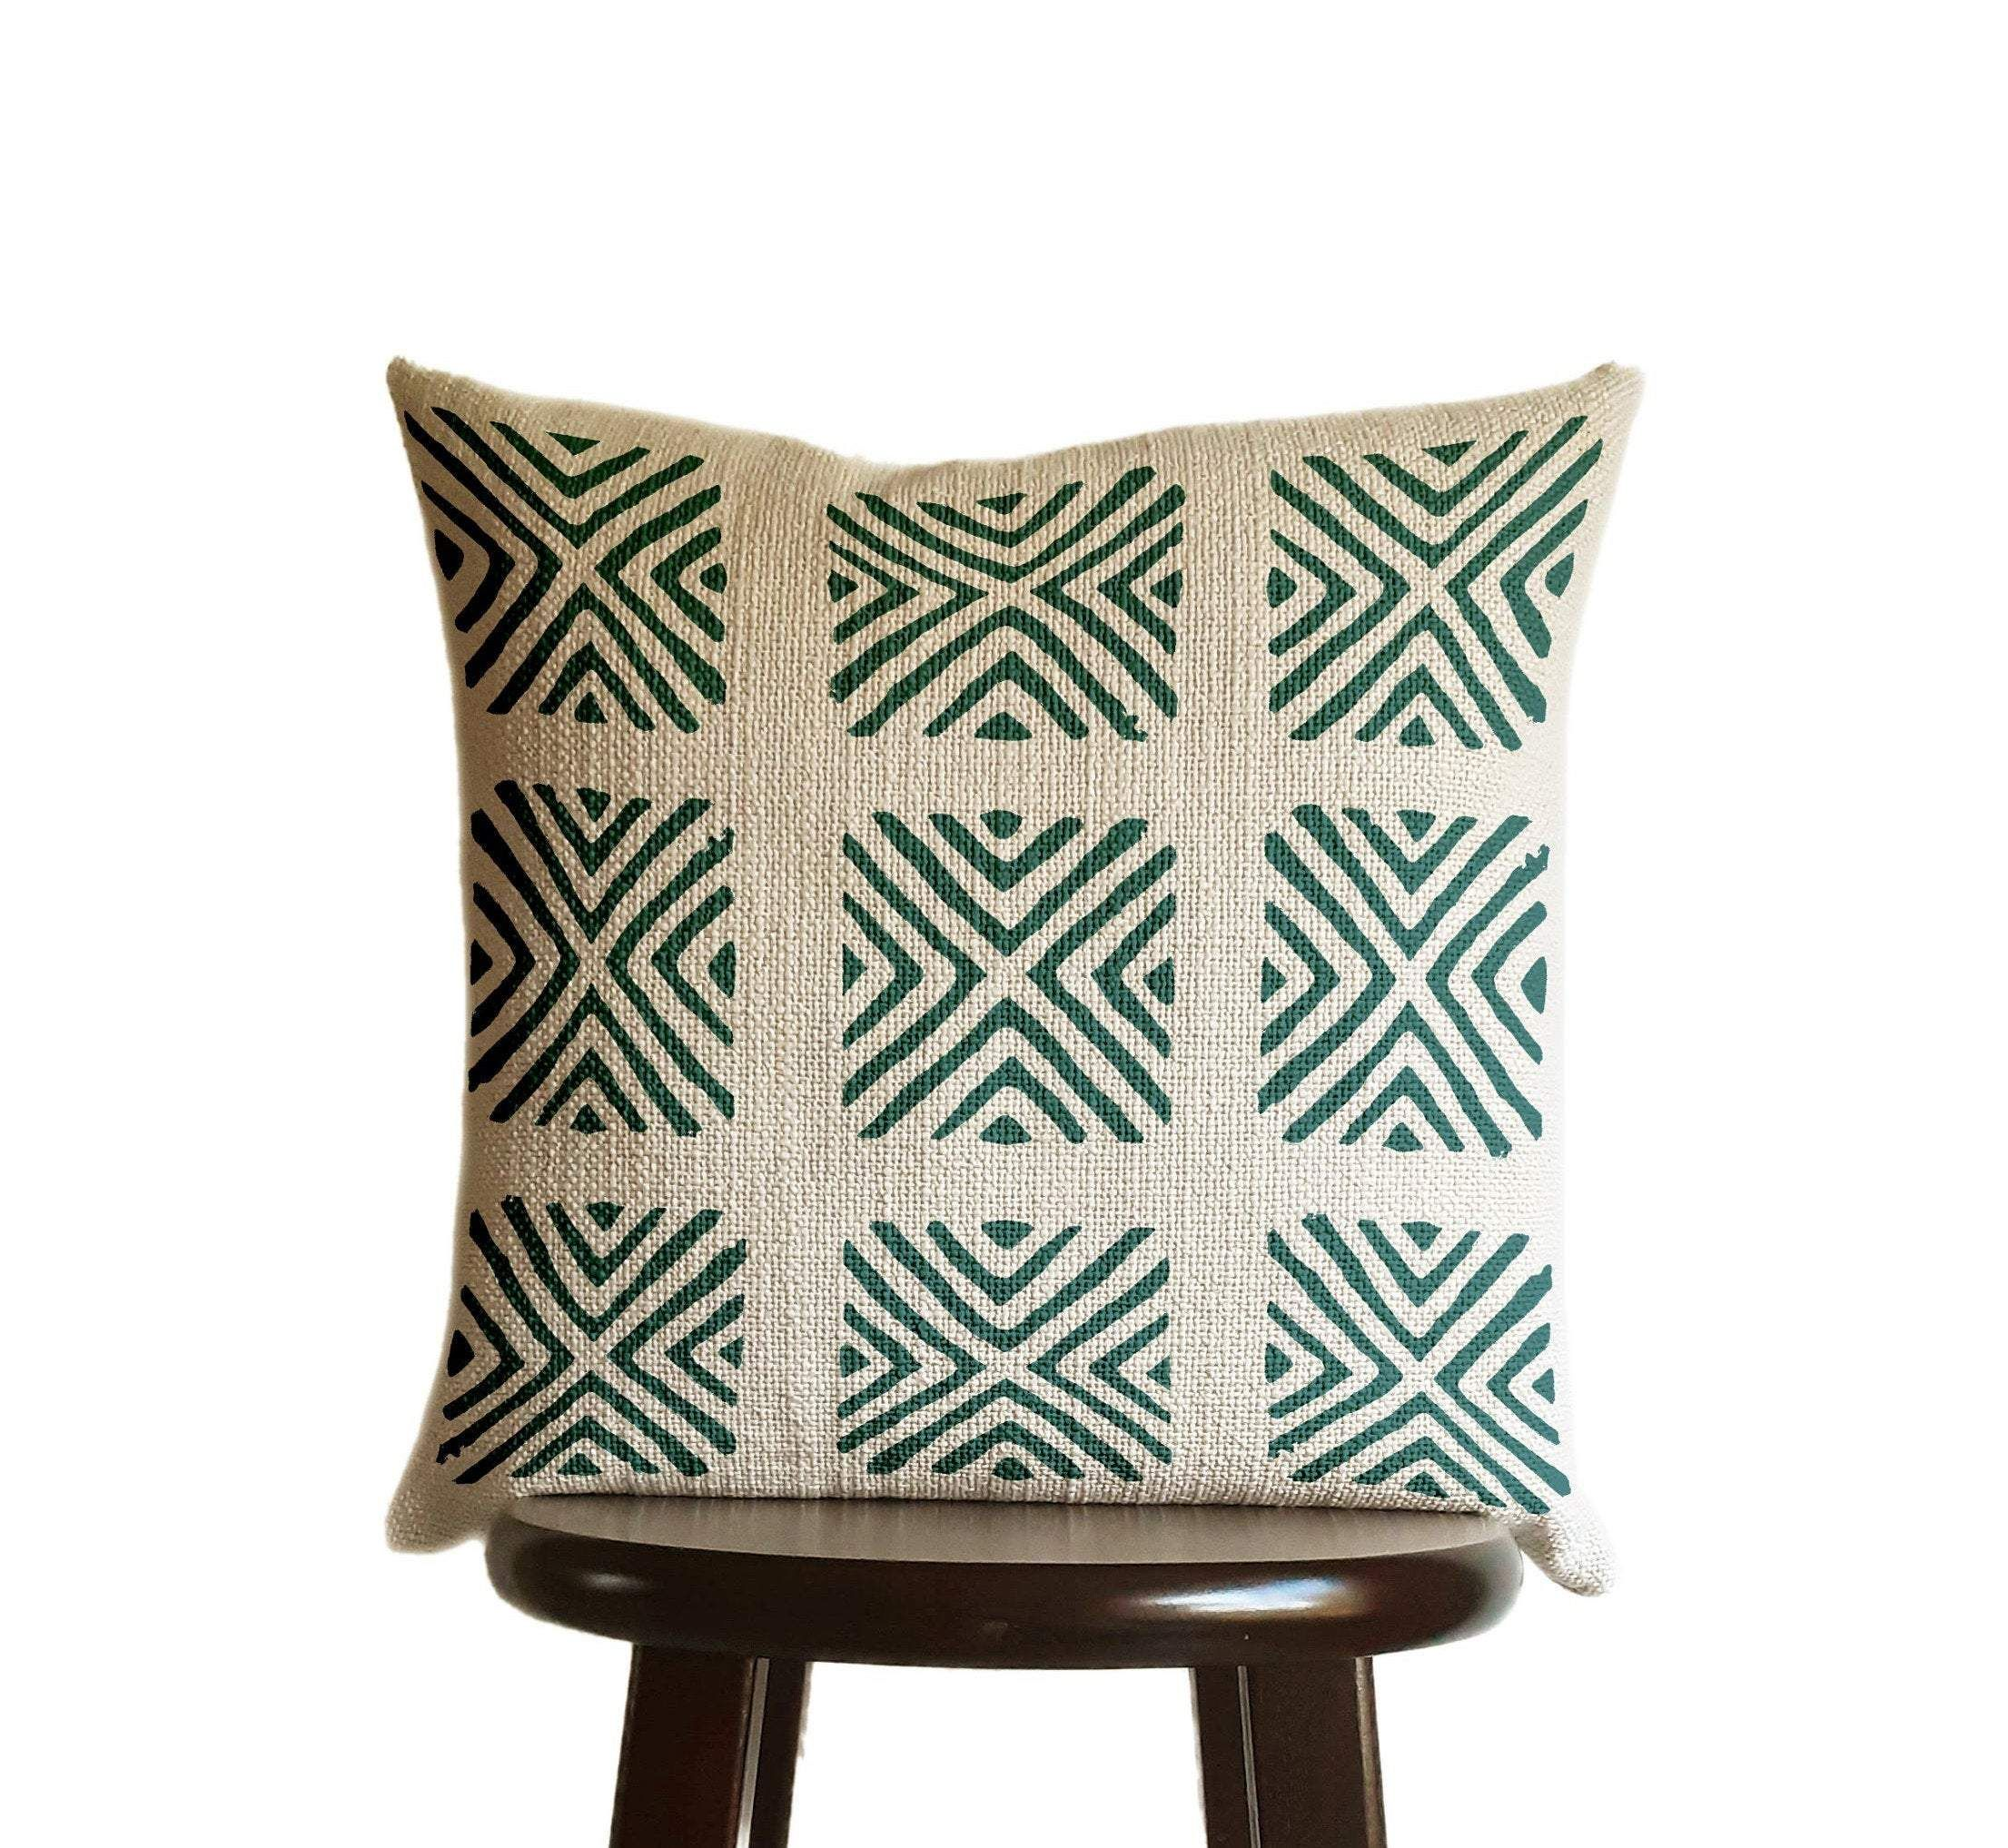 Blue Green Teal Pillow Cover, Tribal Urban Ethnic Square 18x18 in Natural Oatmeal Color Textured Woven Fabric in Modern Boho Home Decor - Lines - 18x18 inches